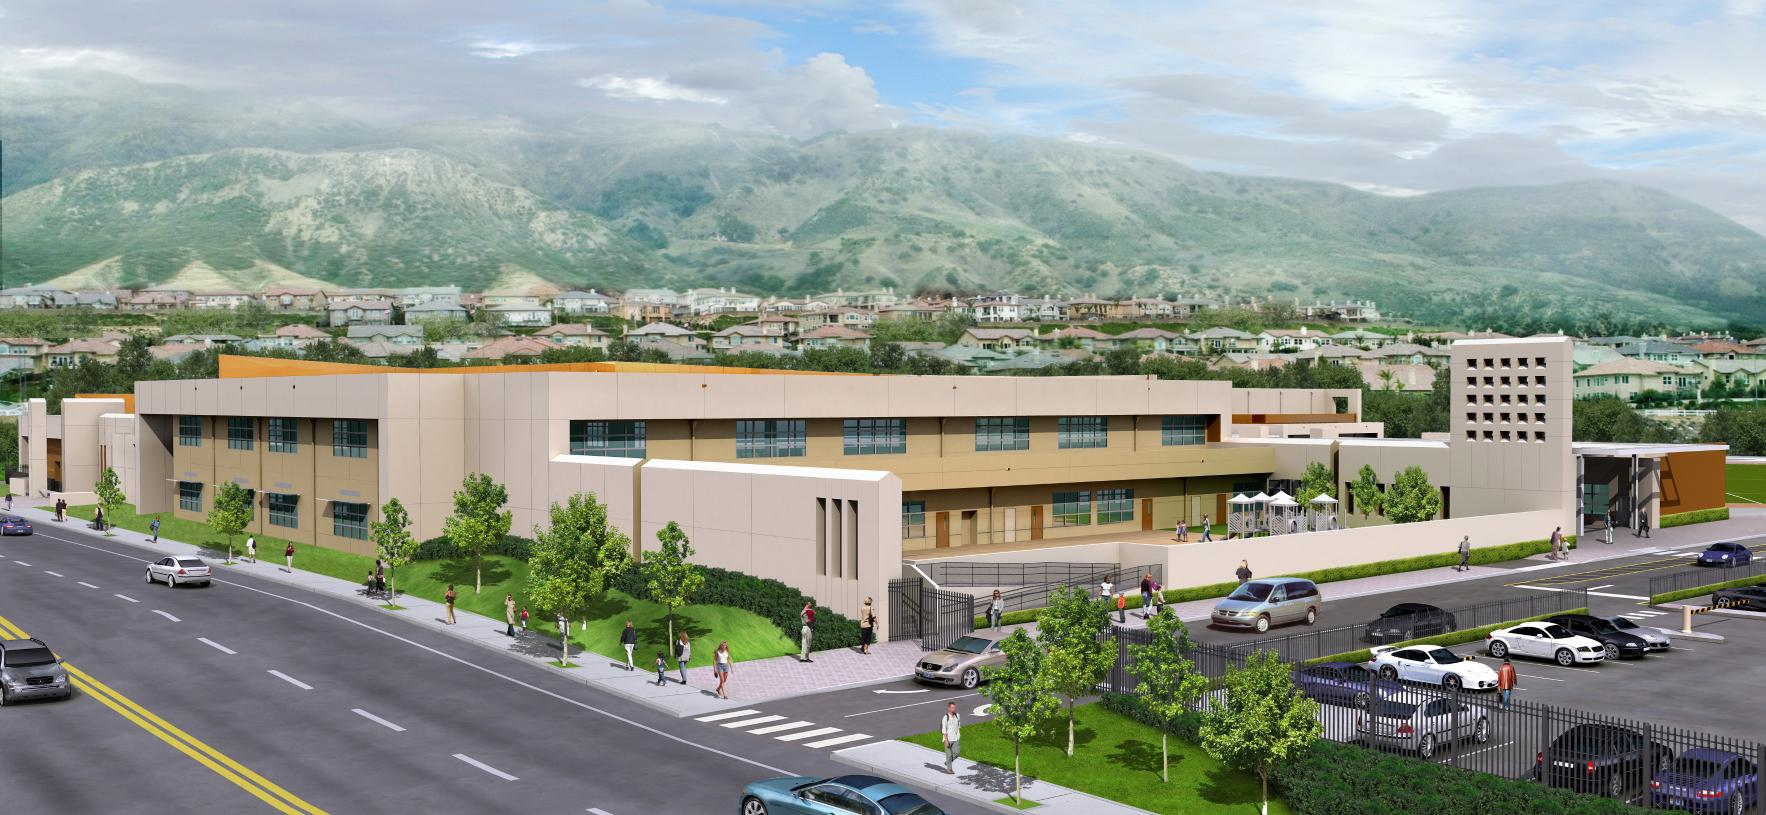 Top-rated and well-respected Porter Ranch K-8 Community School